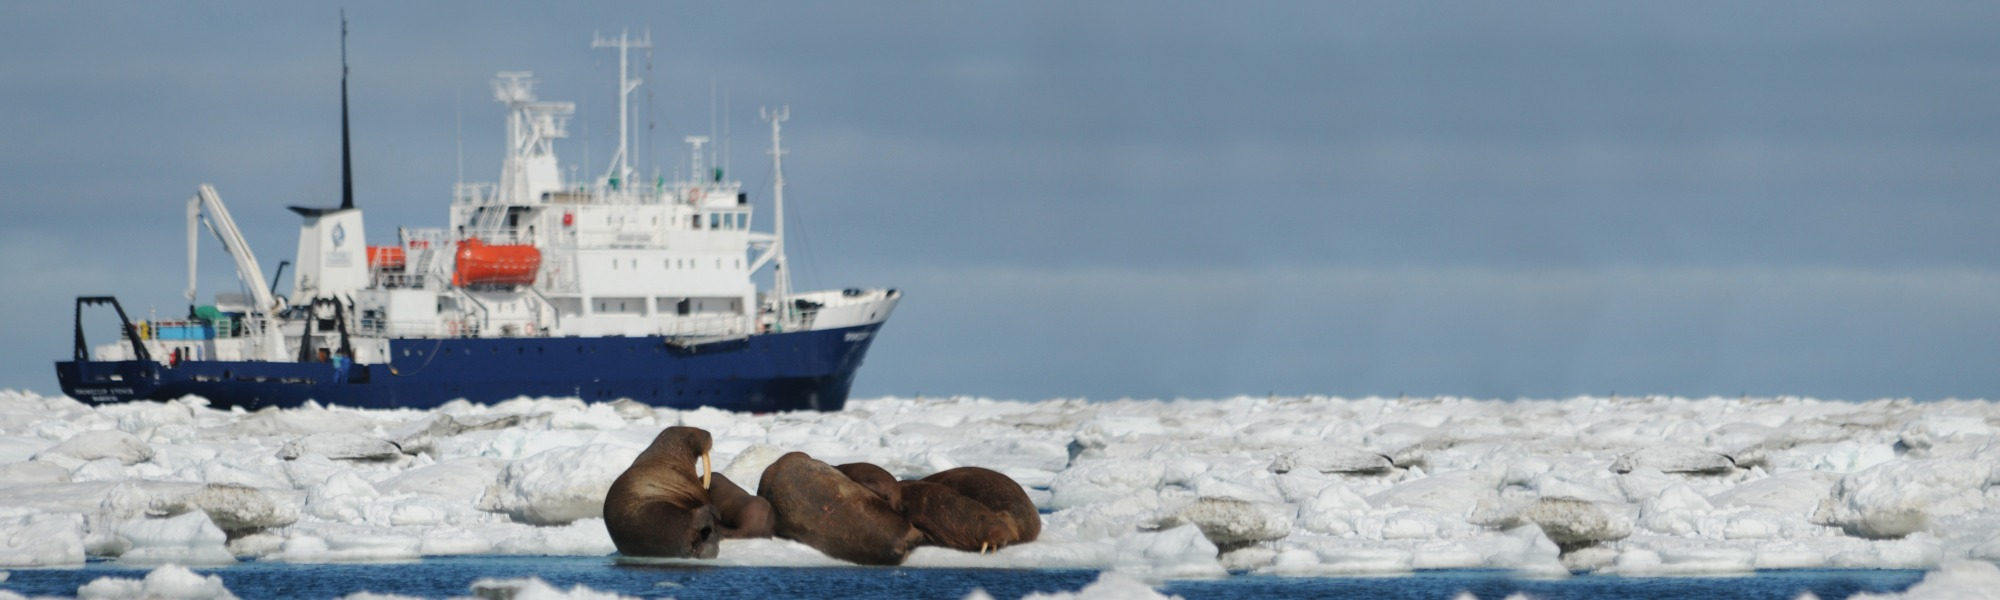 Spirit of Enderby - Expedition Cruises   Arctic Travel Centre